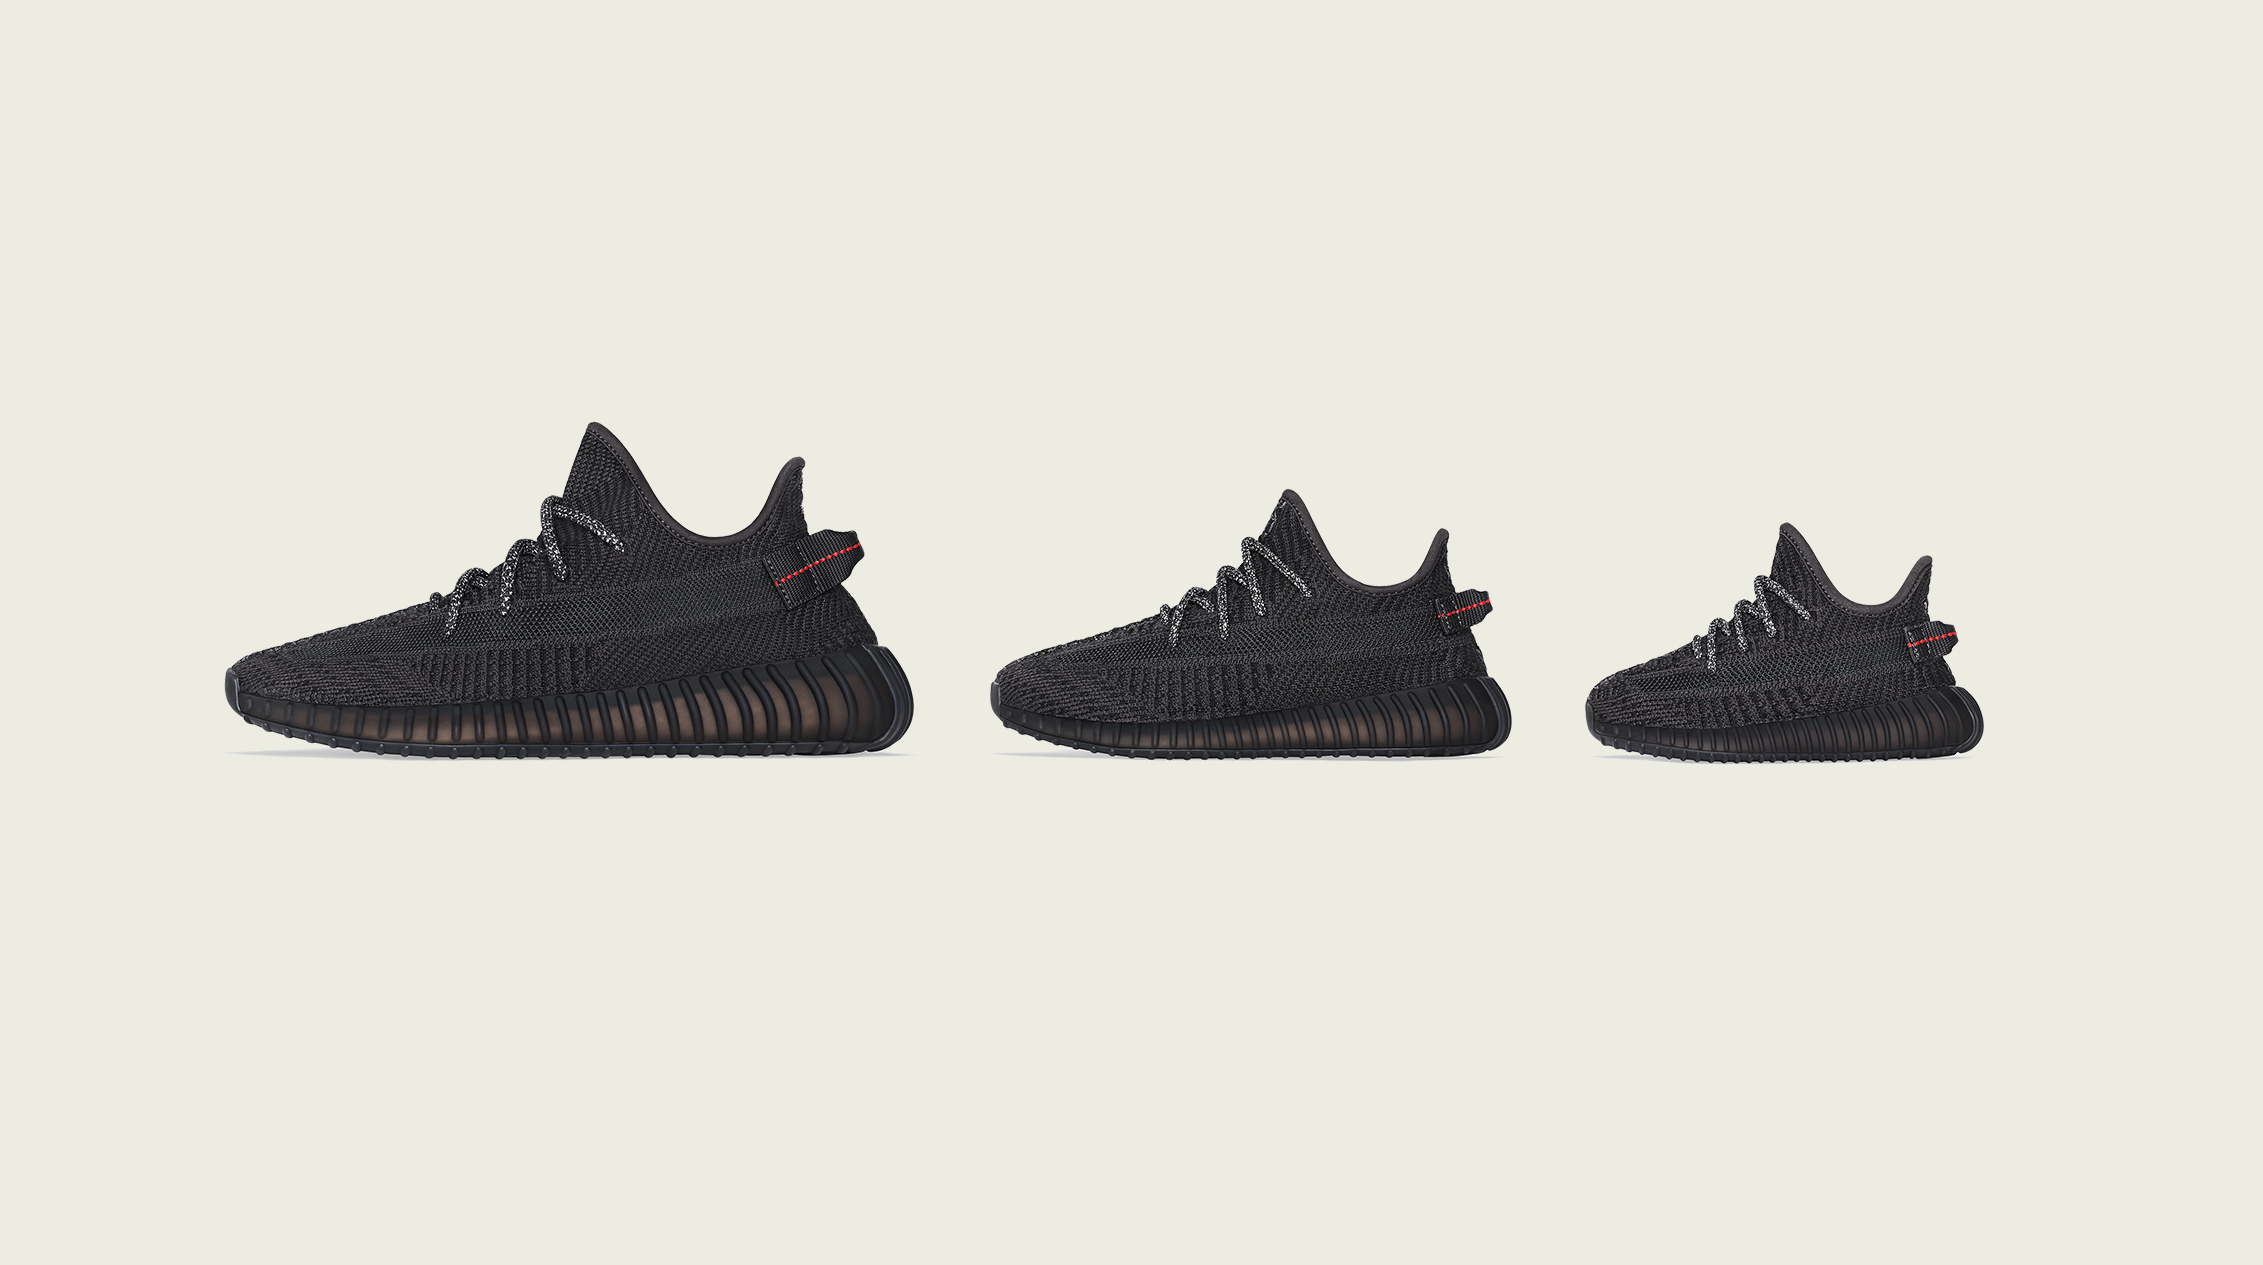 buy online 3e080 b7bd3 Official Release Details of YEEZY BOOST 350 V2 and 700 V2 ...